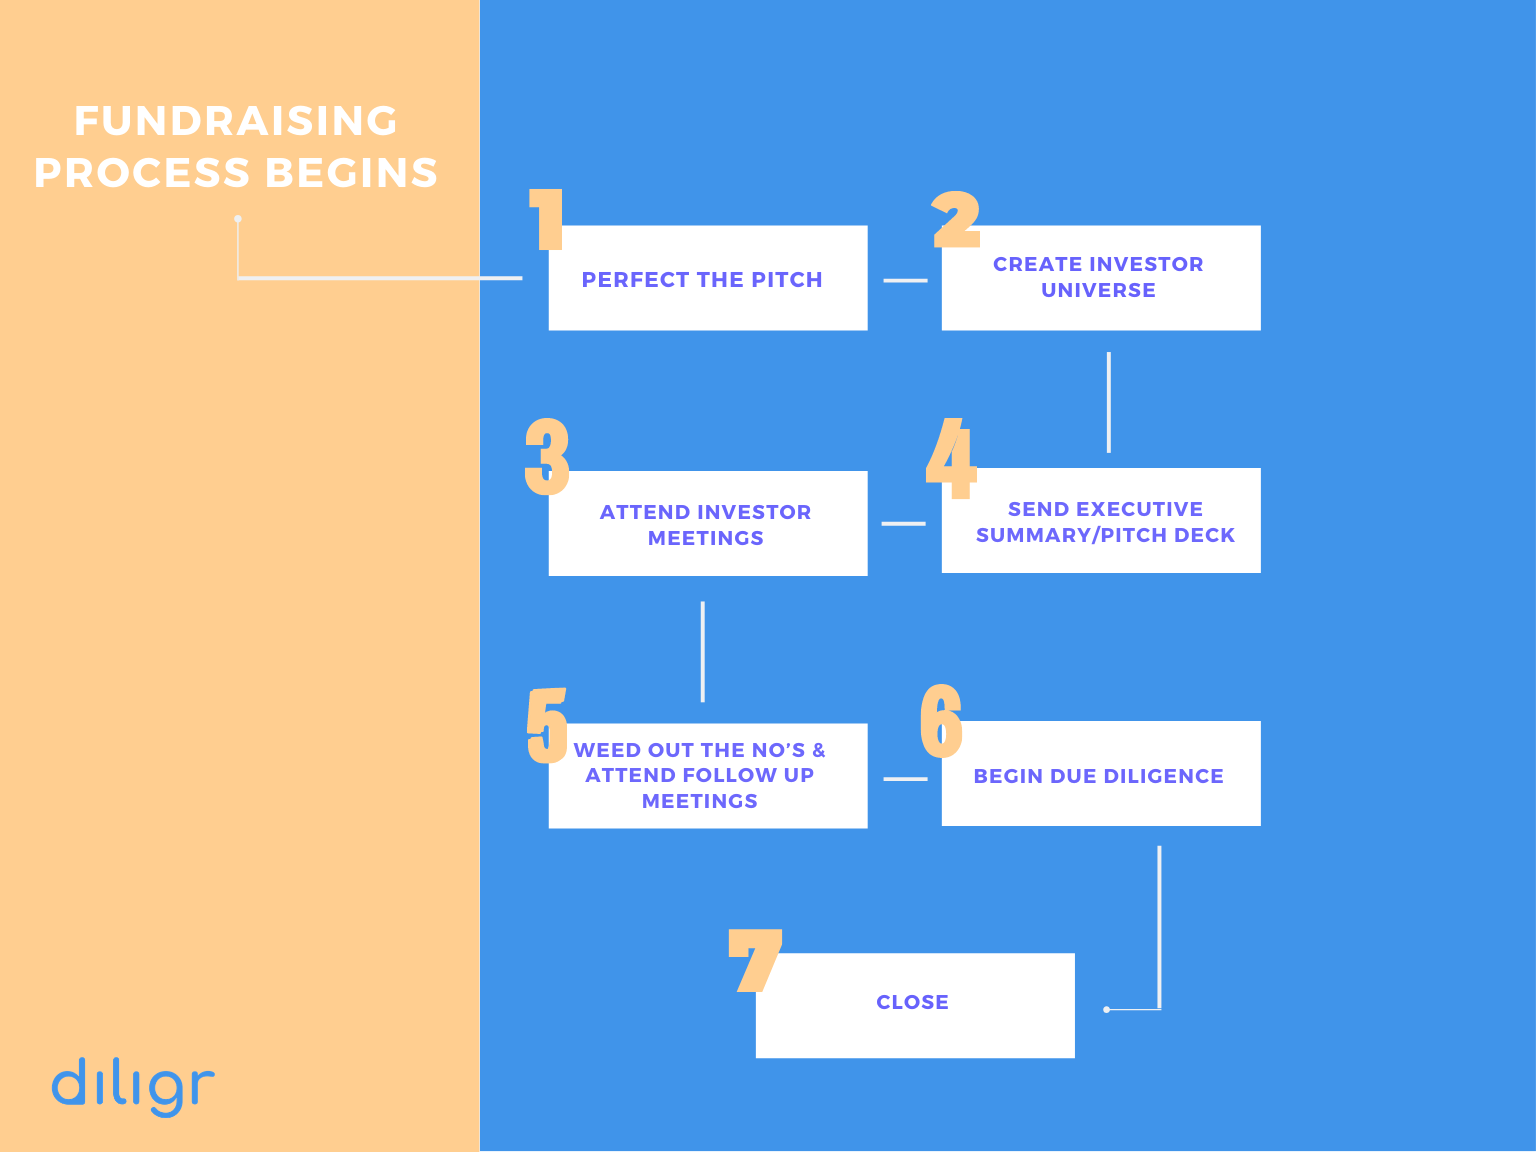 Fundraising process outline